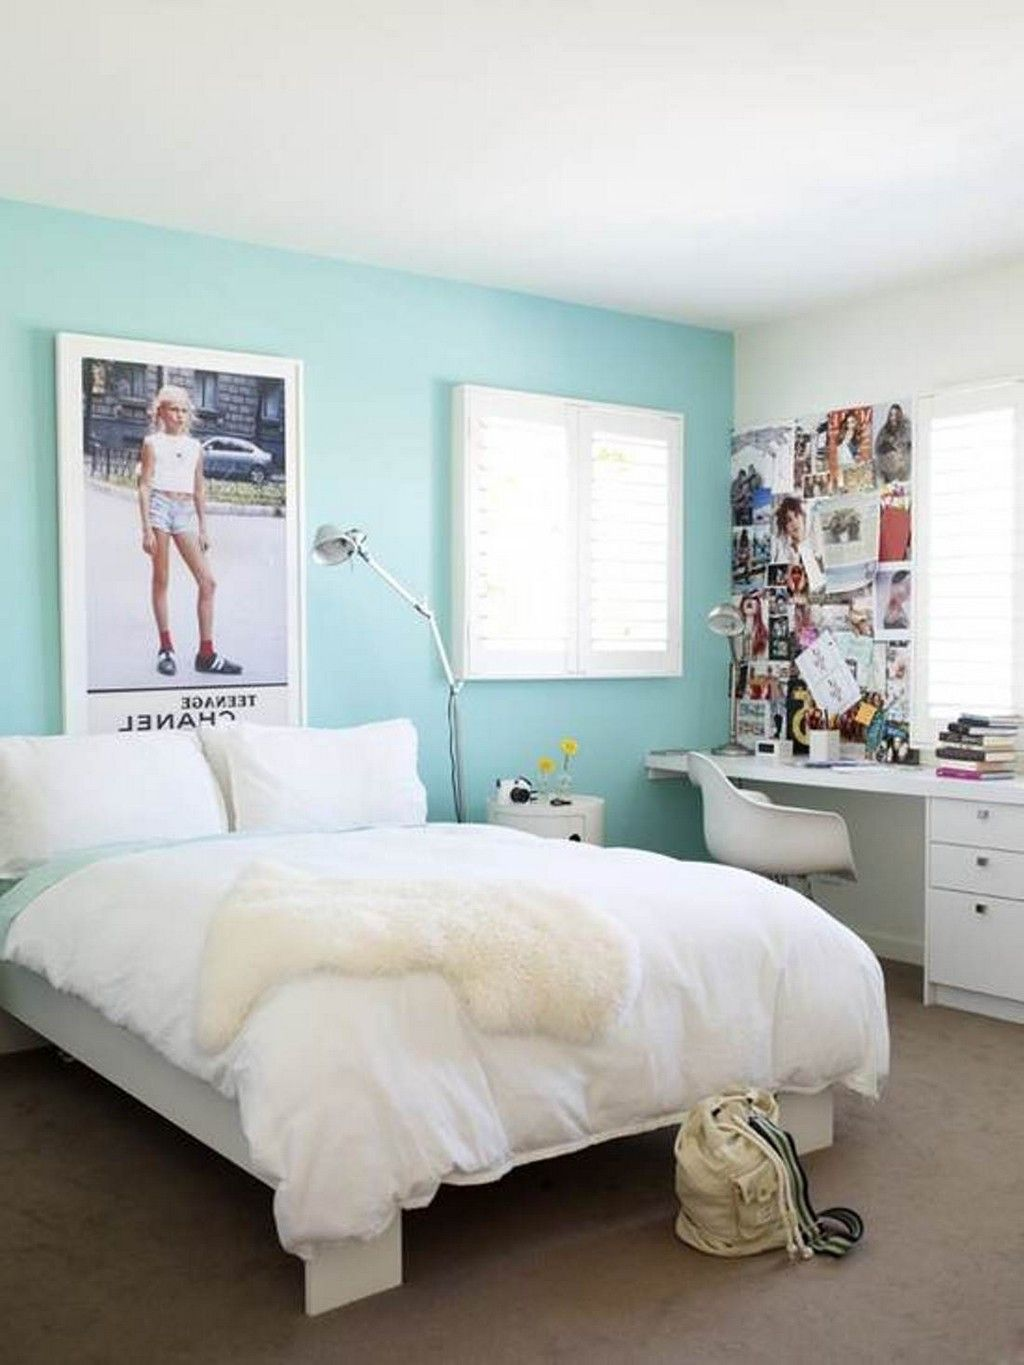 Bedroom color ideas for small rooms - Bedroom Calming Blue Paint Colors For Small Teen Bedroom Ideas